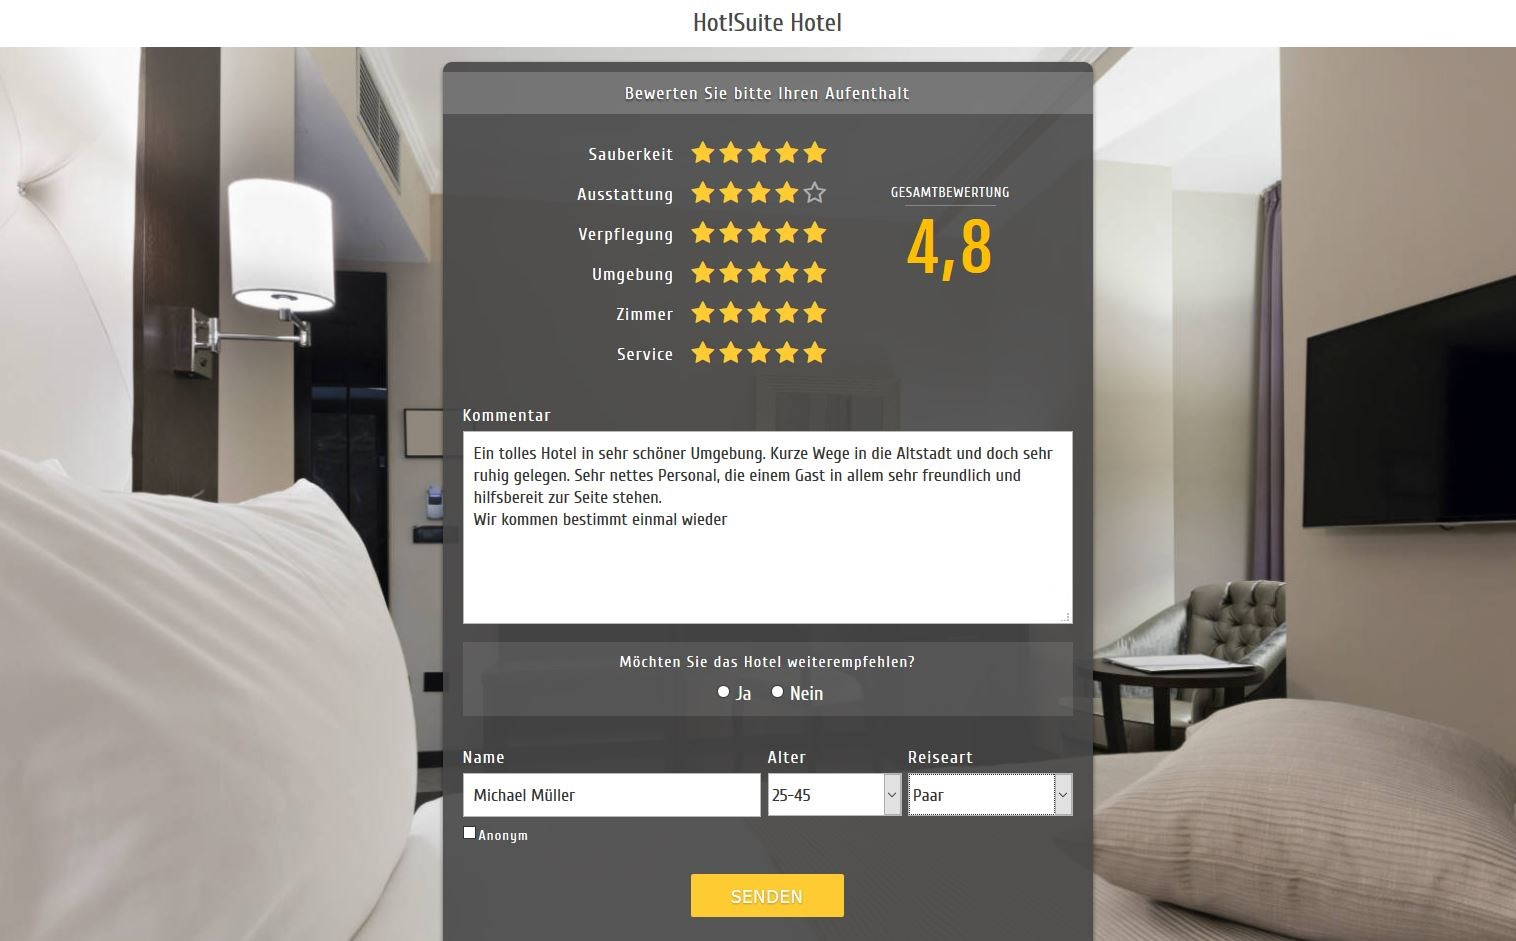 Hotel Reputation Management Software | Hot!Review